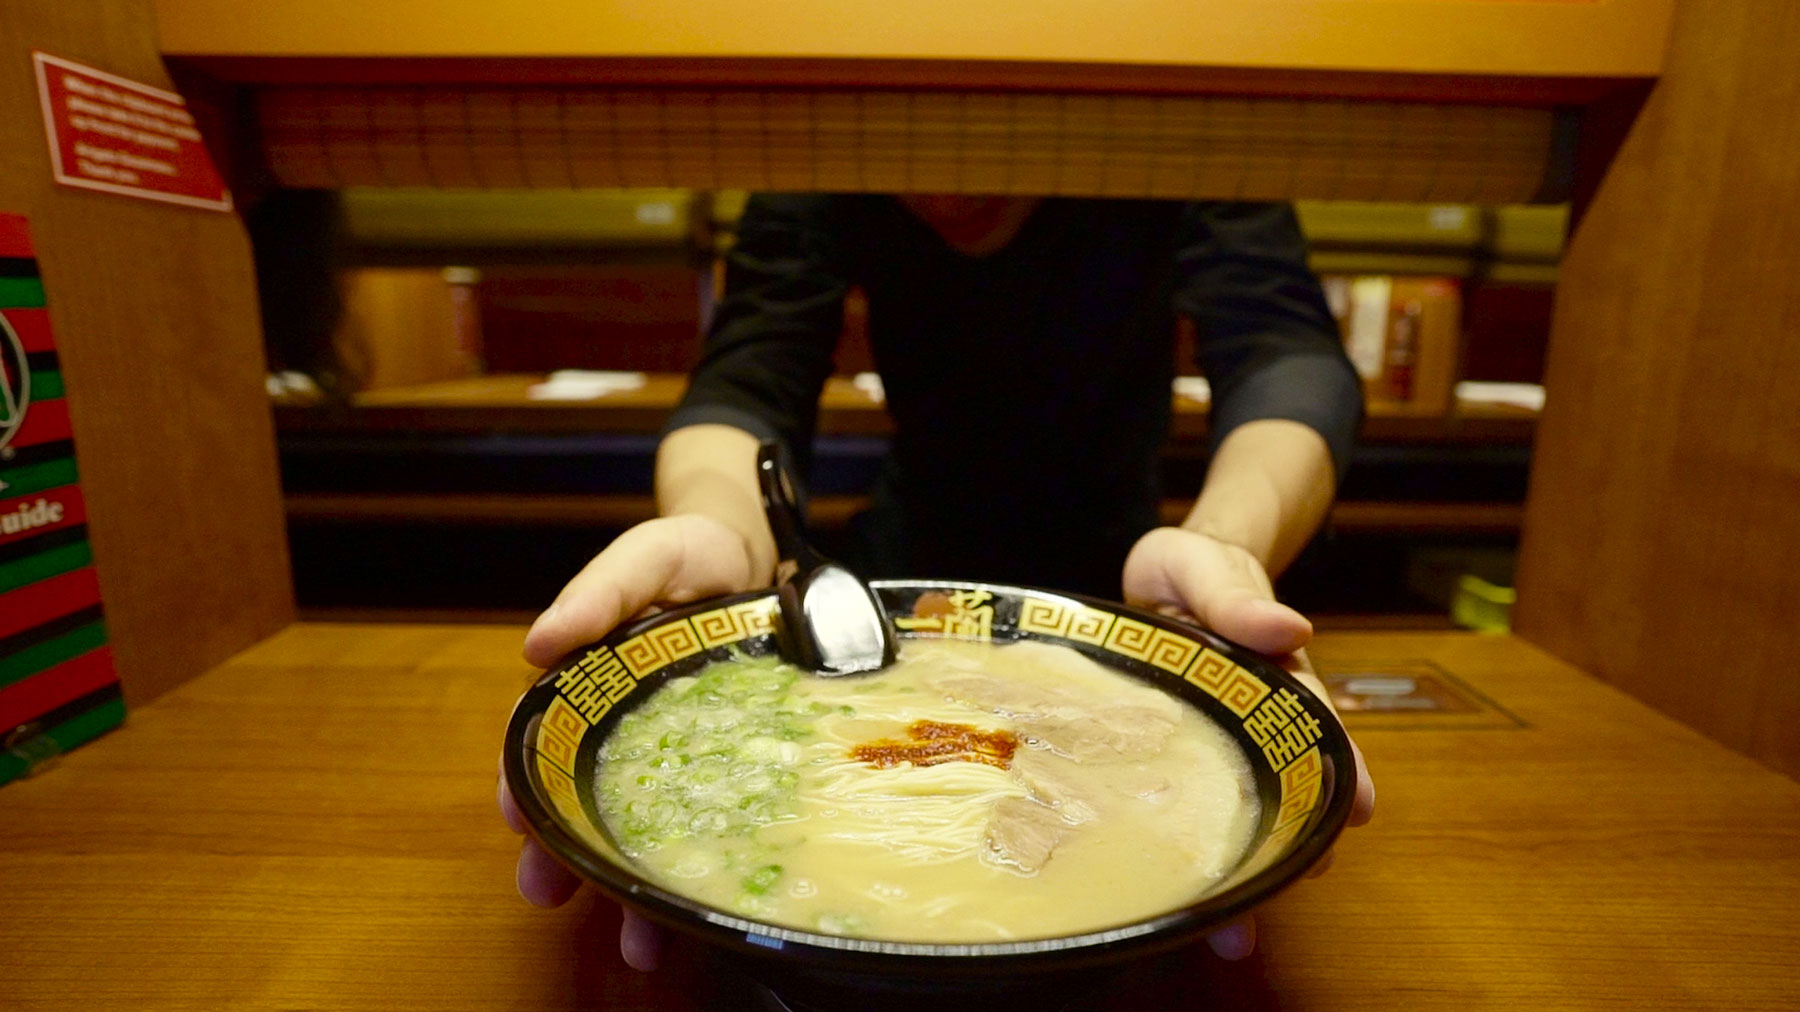 ichiran ramen serving bowl